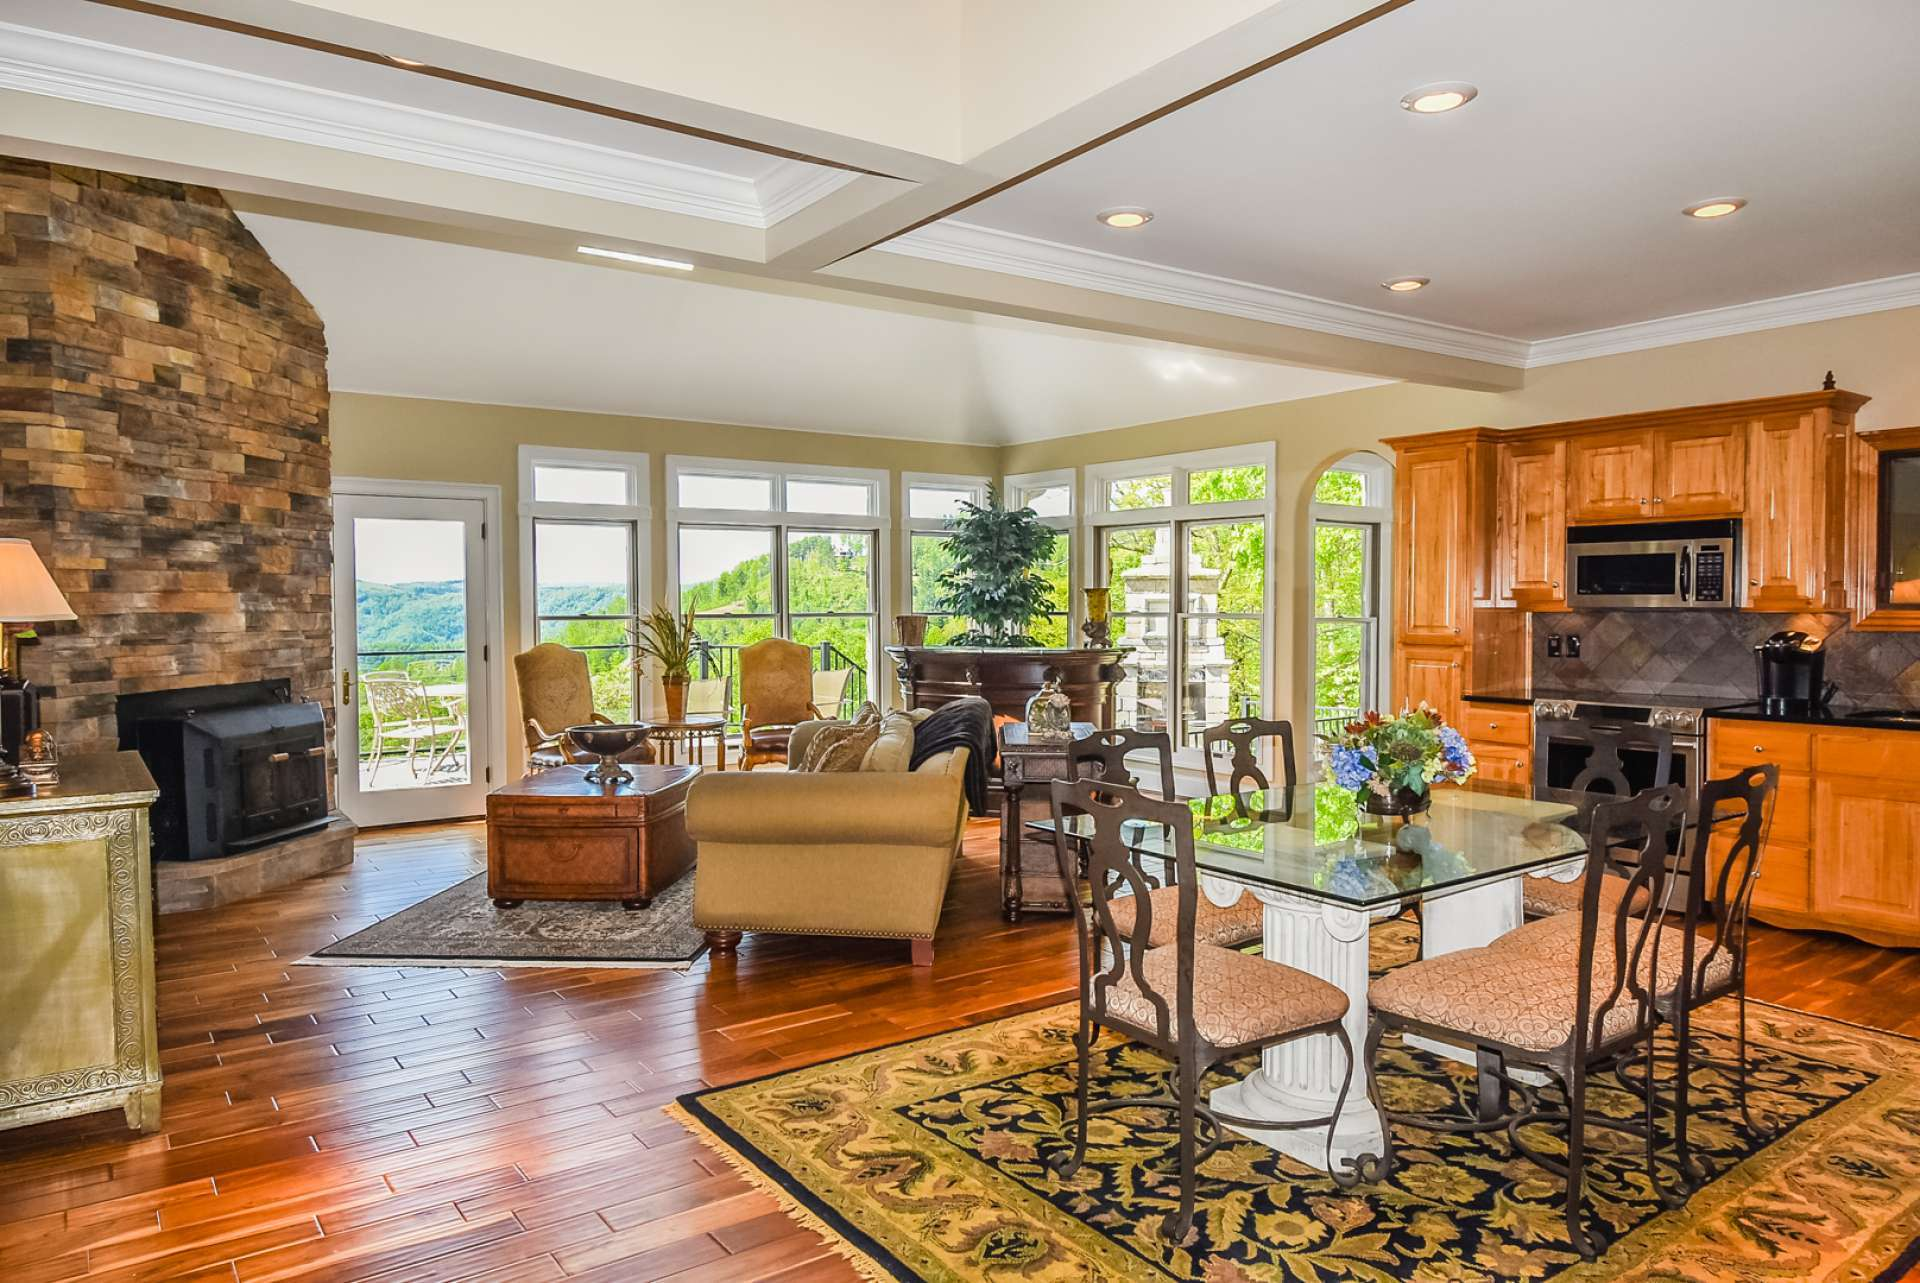 The light filled great room features Teak flooring, stone fireplace with wood stove insert, and a wall of windows to enjoy the views.